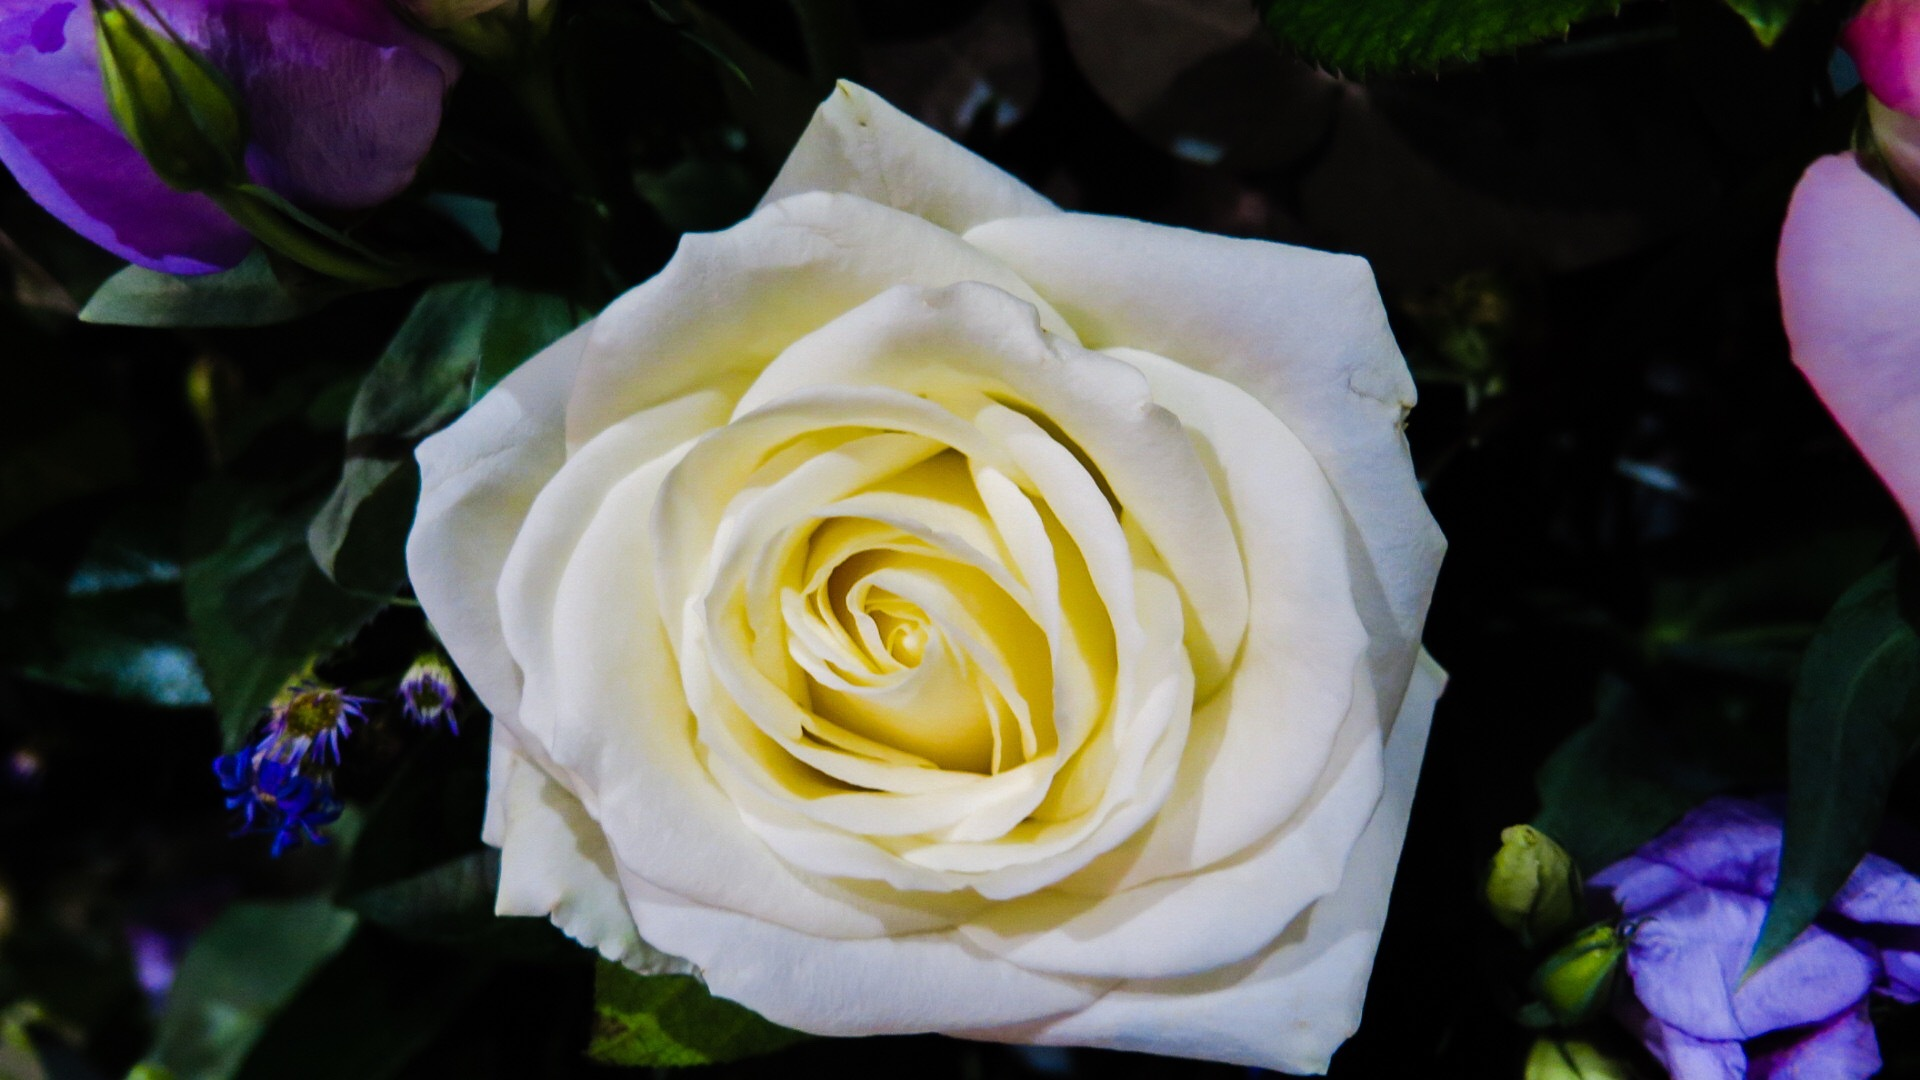 A white rose for you by Terry Reynolds